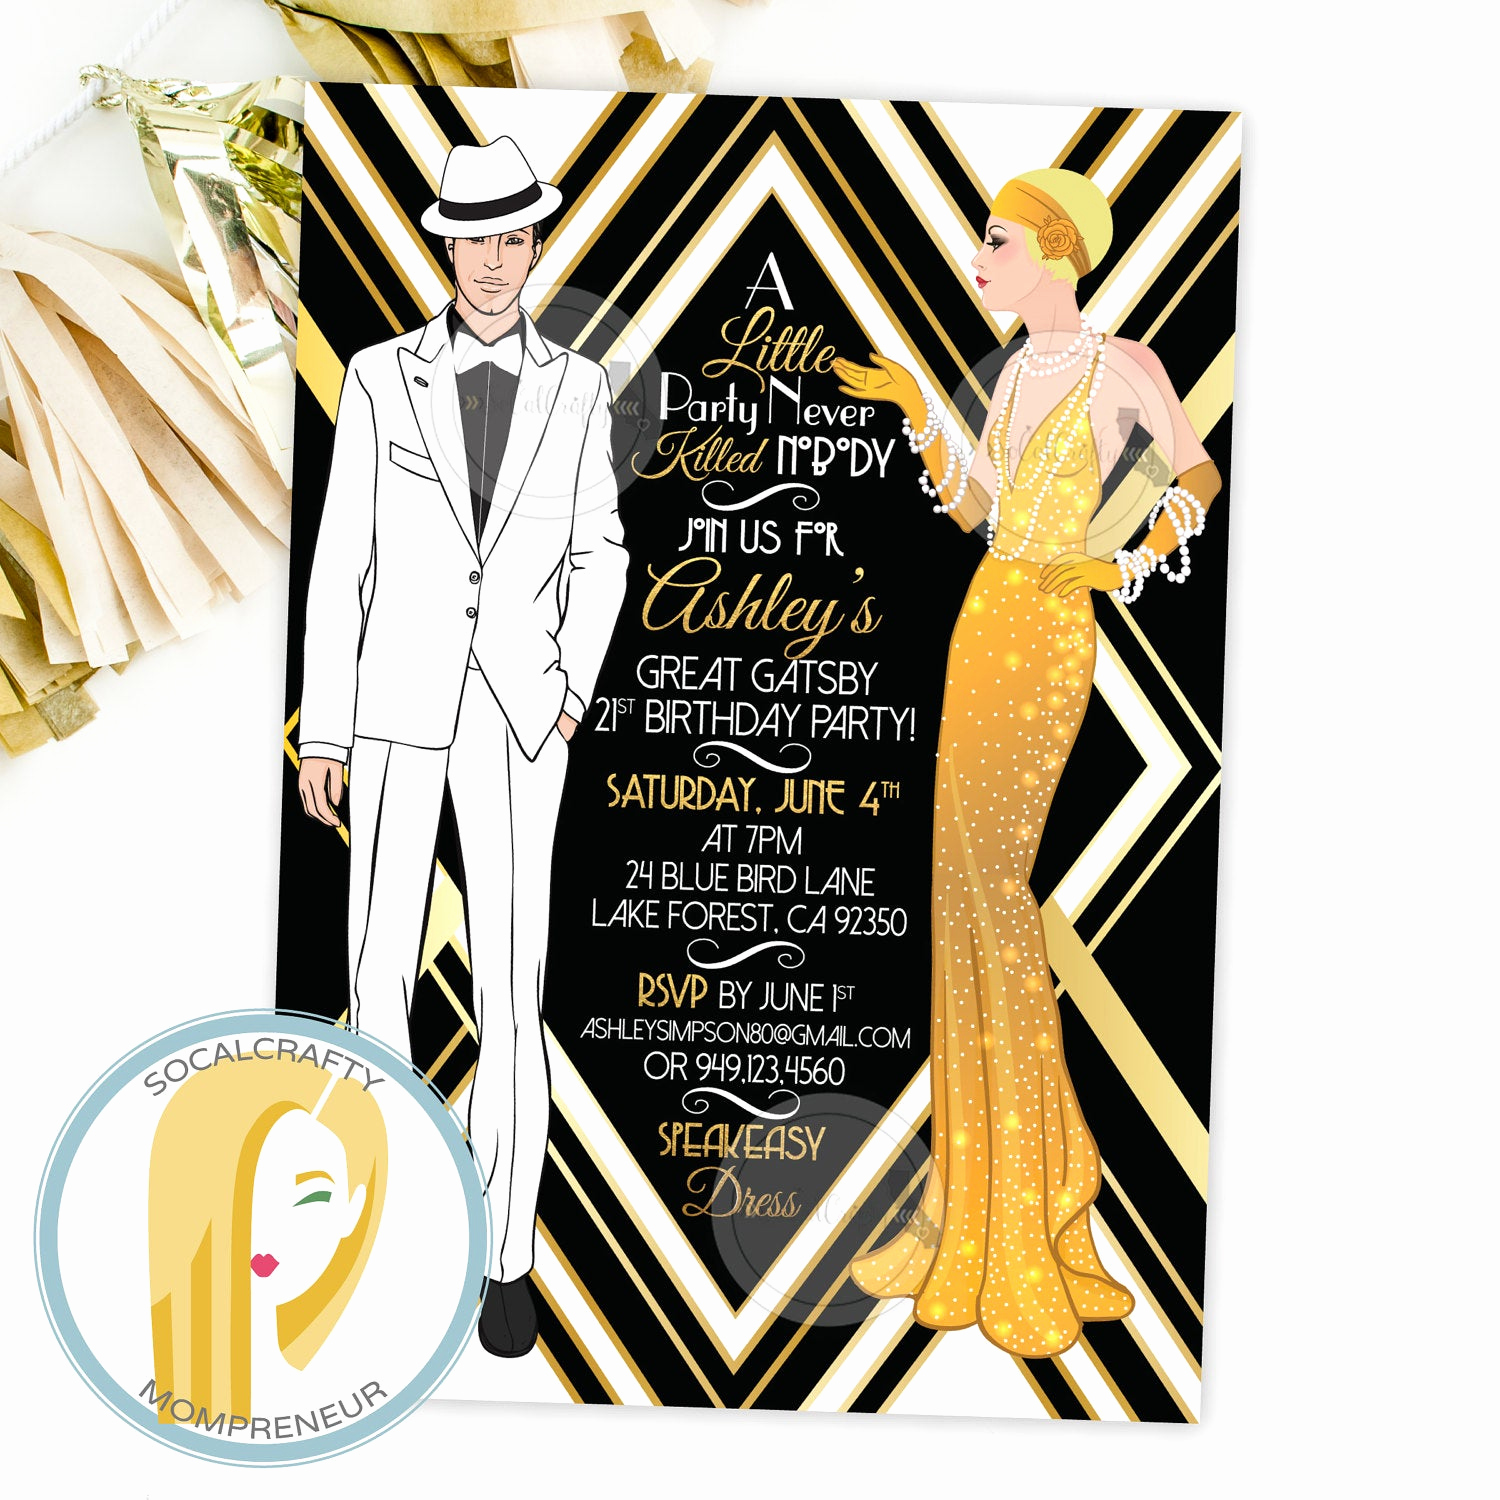 Great Gatsby Invitation Ideas Awesome Great Gatsby Birthday Party Invitation Gatsby Invitation